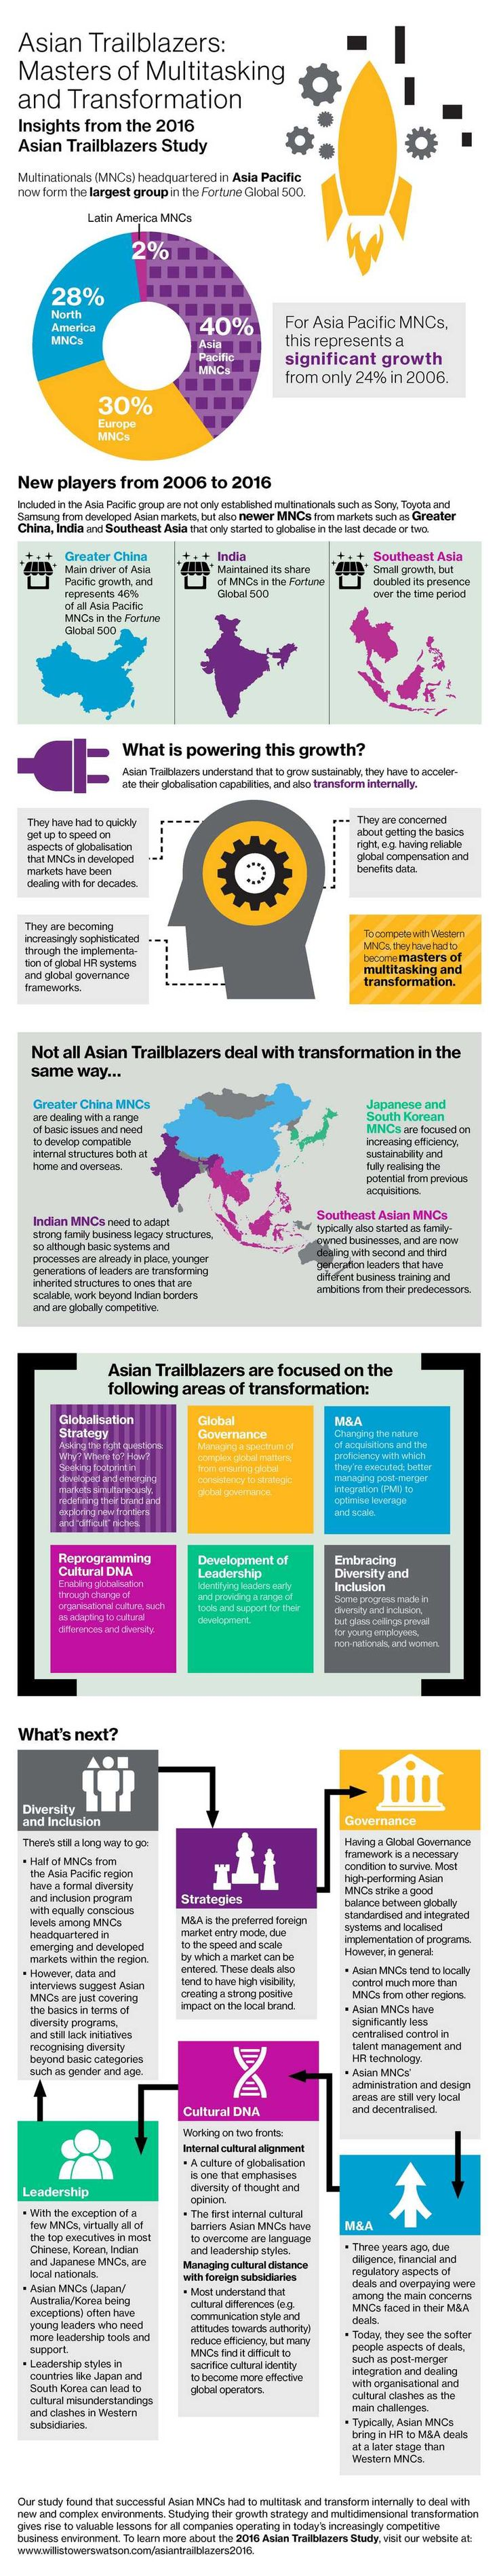 Today, Asia Pacific-headquartered companies in the Fortune Global 500 outnumber those headquartered in Europe and North America. This was not the case a mere decade ago. Willis Towers Watson's 2016 Asian Trailblazers Study examines the globalisation of these multinationals — without the luxury of time, and operating in complex, financially precarious markets, how have they been able to grow so dramatically?